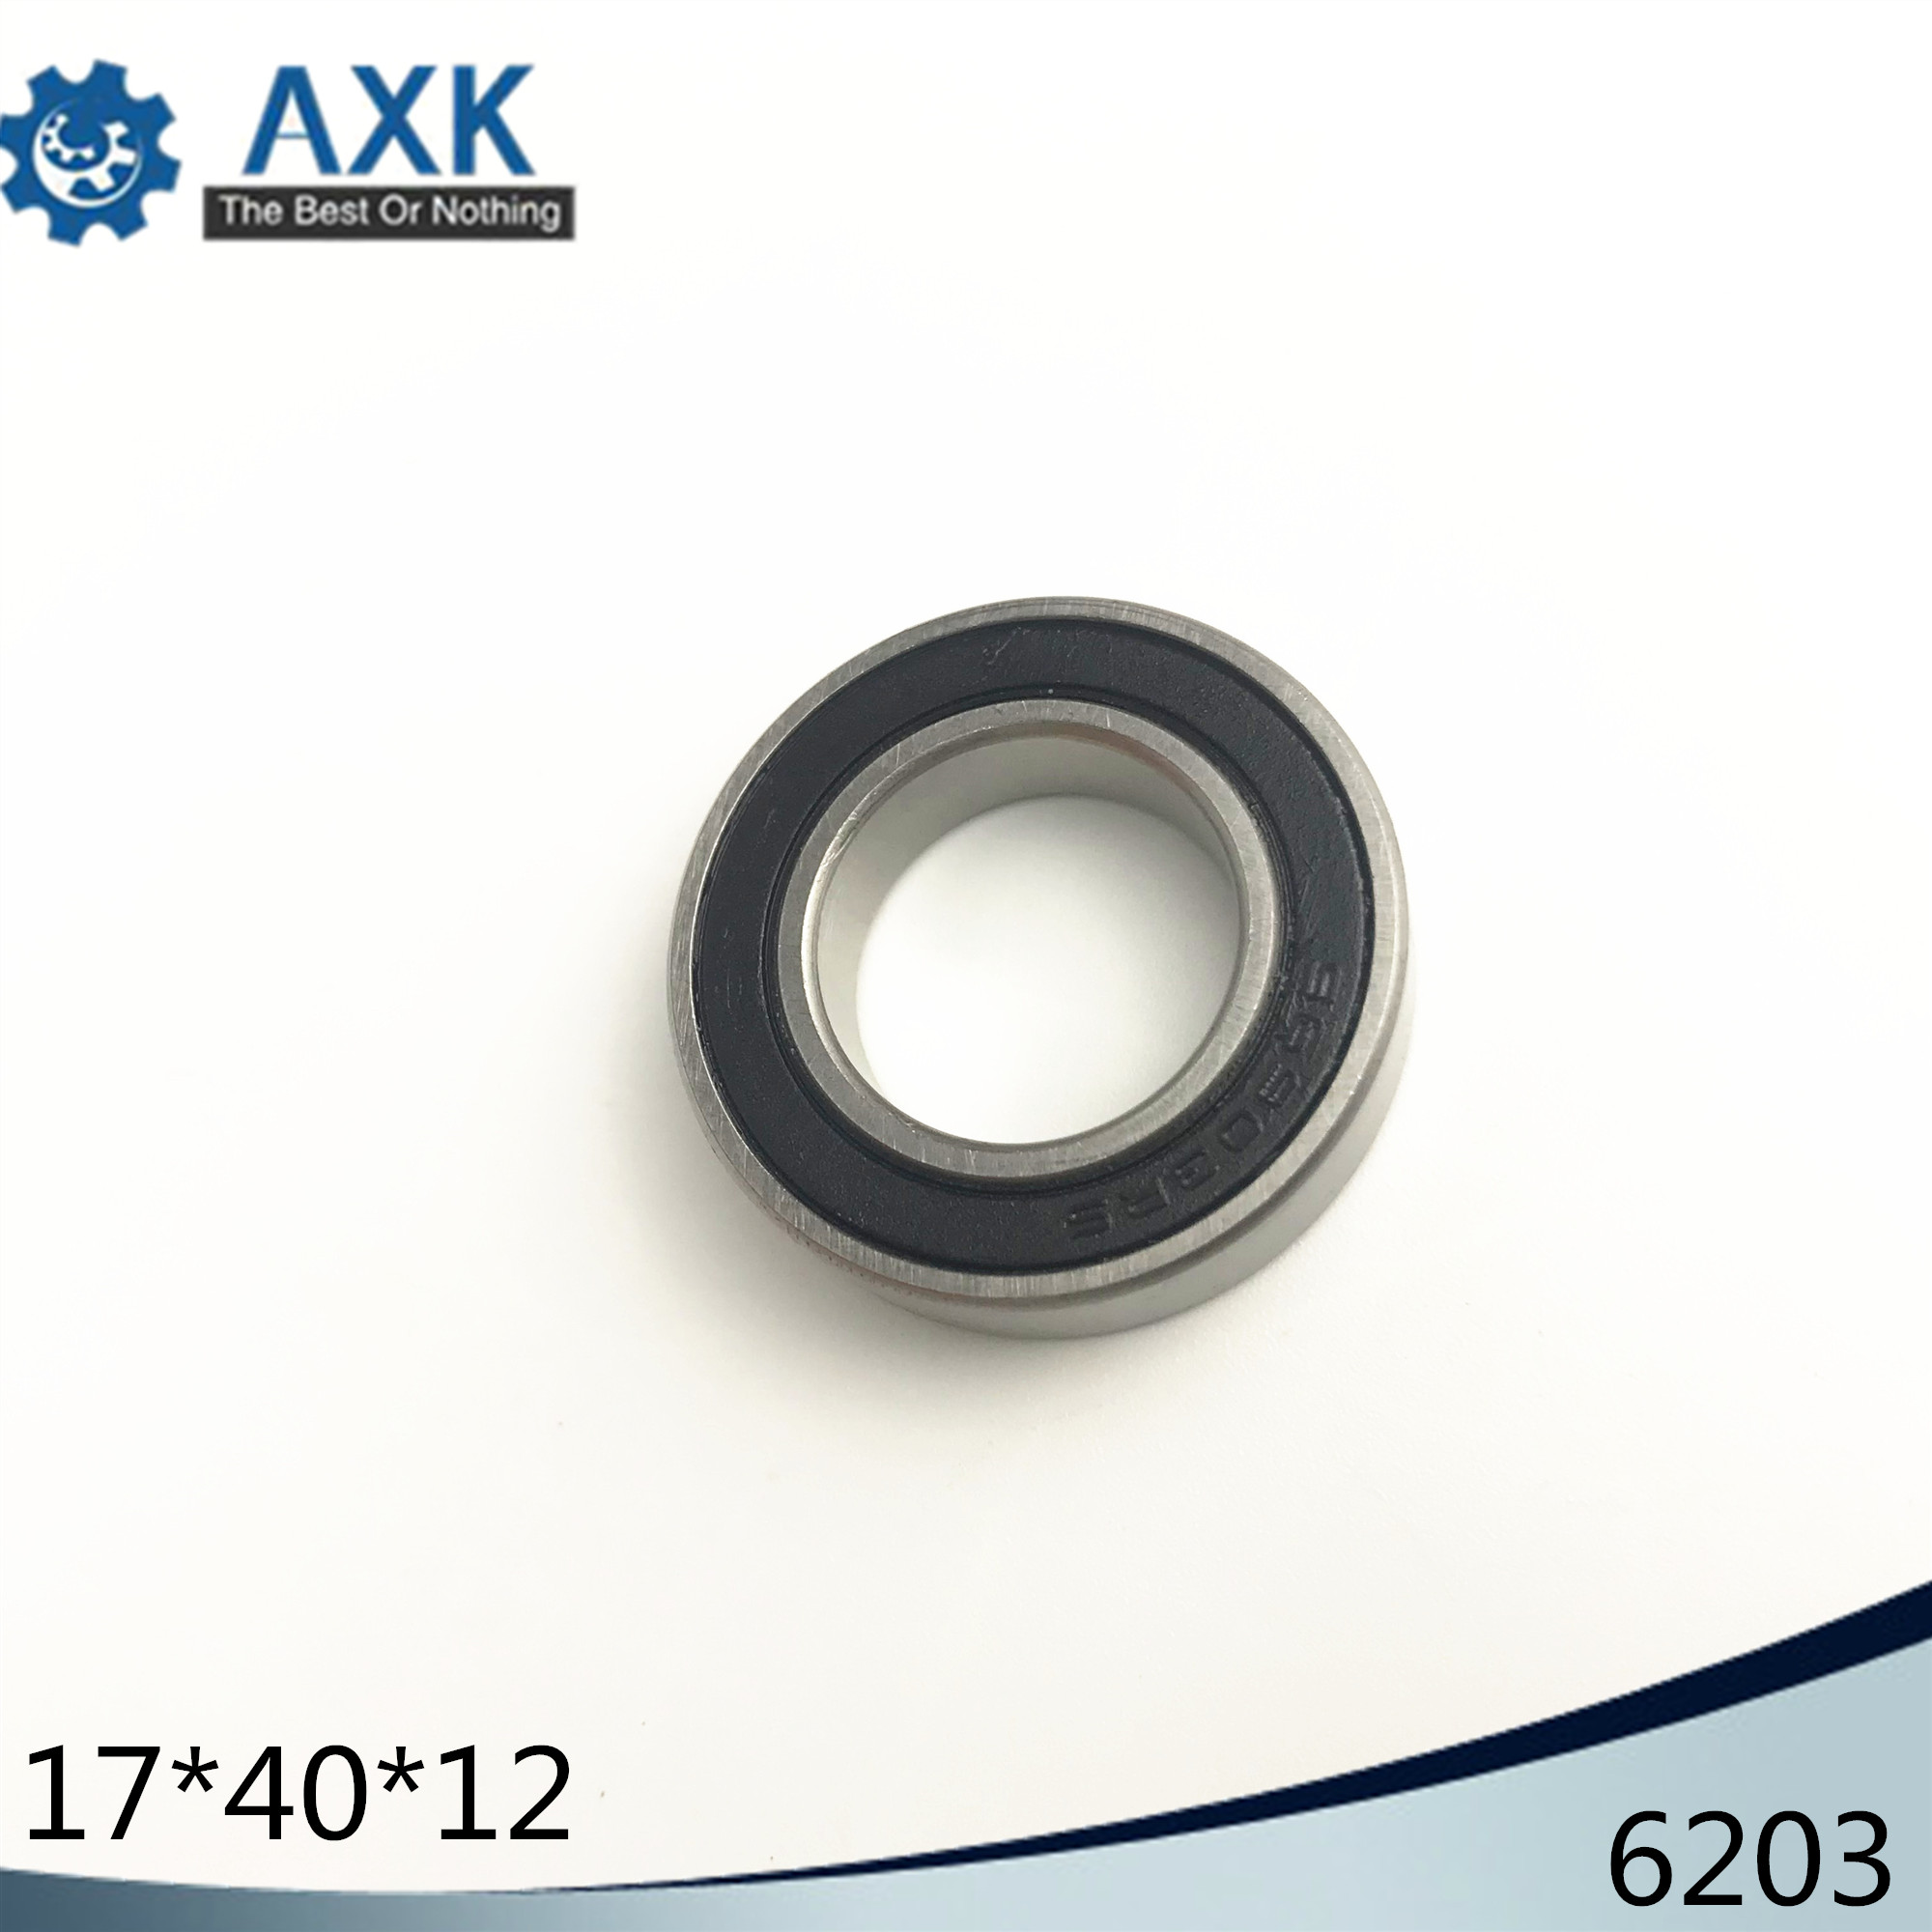 6203 Hybrid Ceramic Bearing 17*40*12 mm ABEC-1 ( 1 PC) Industry Motor Spindle 6203HC Hybrids Si3N4 Ball Bearings 3NC 6203RS6203 Hybrid Ceramic Bearing 17*40*12 mm ABEC-1 ( 1 PC) Industry Motor Spindle 6203HC Hybrids Si3N4 Ball Bearings 3NC 6203RS